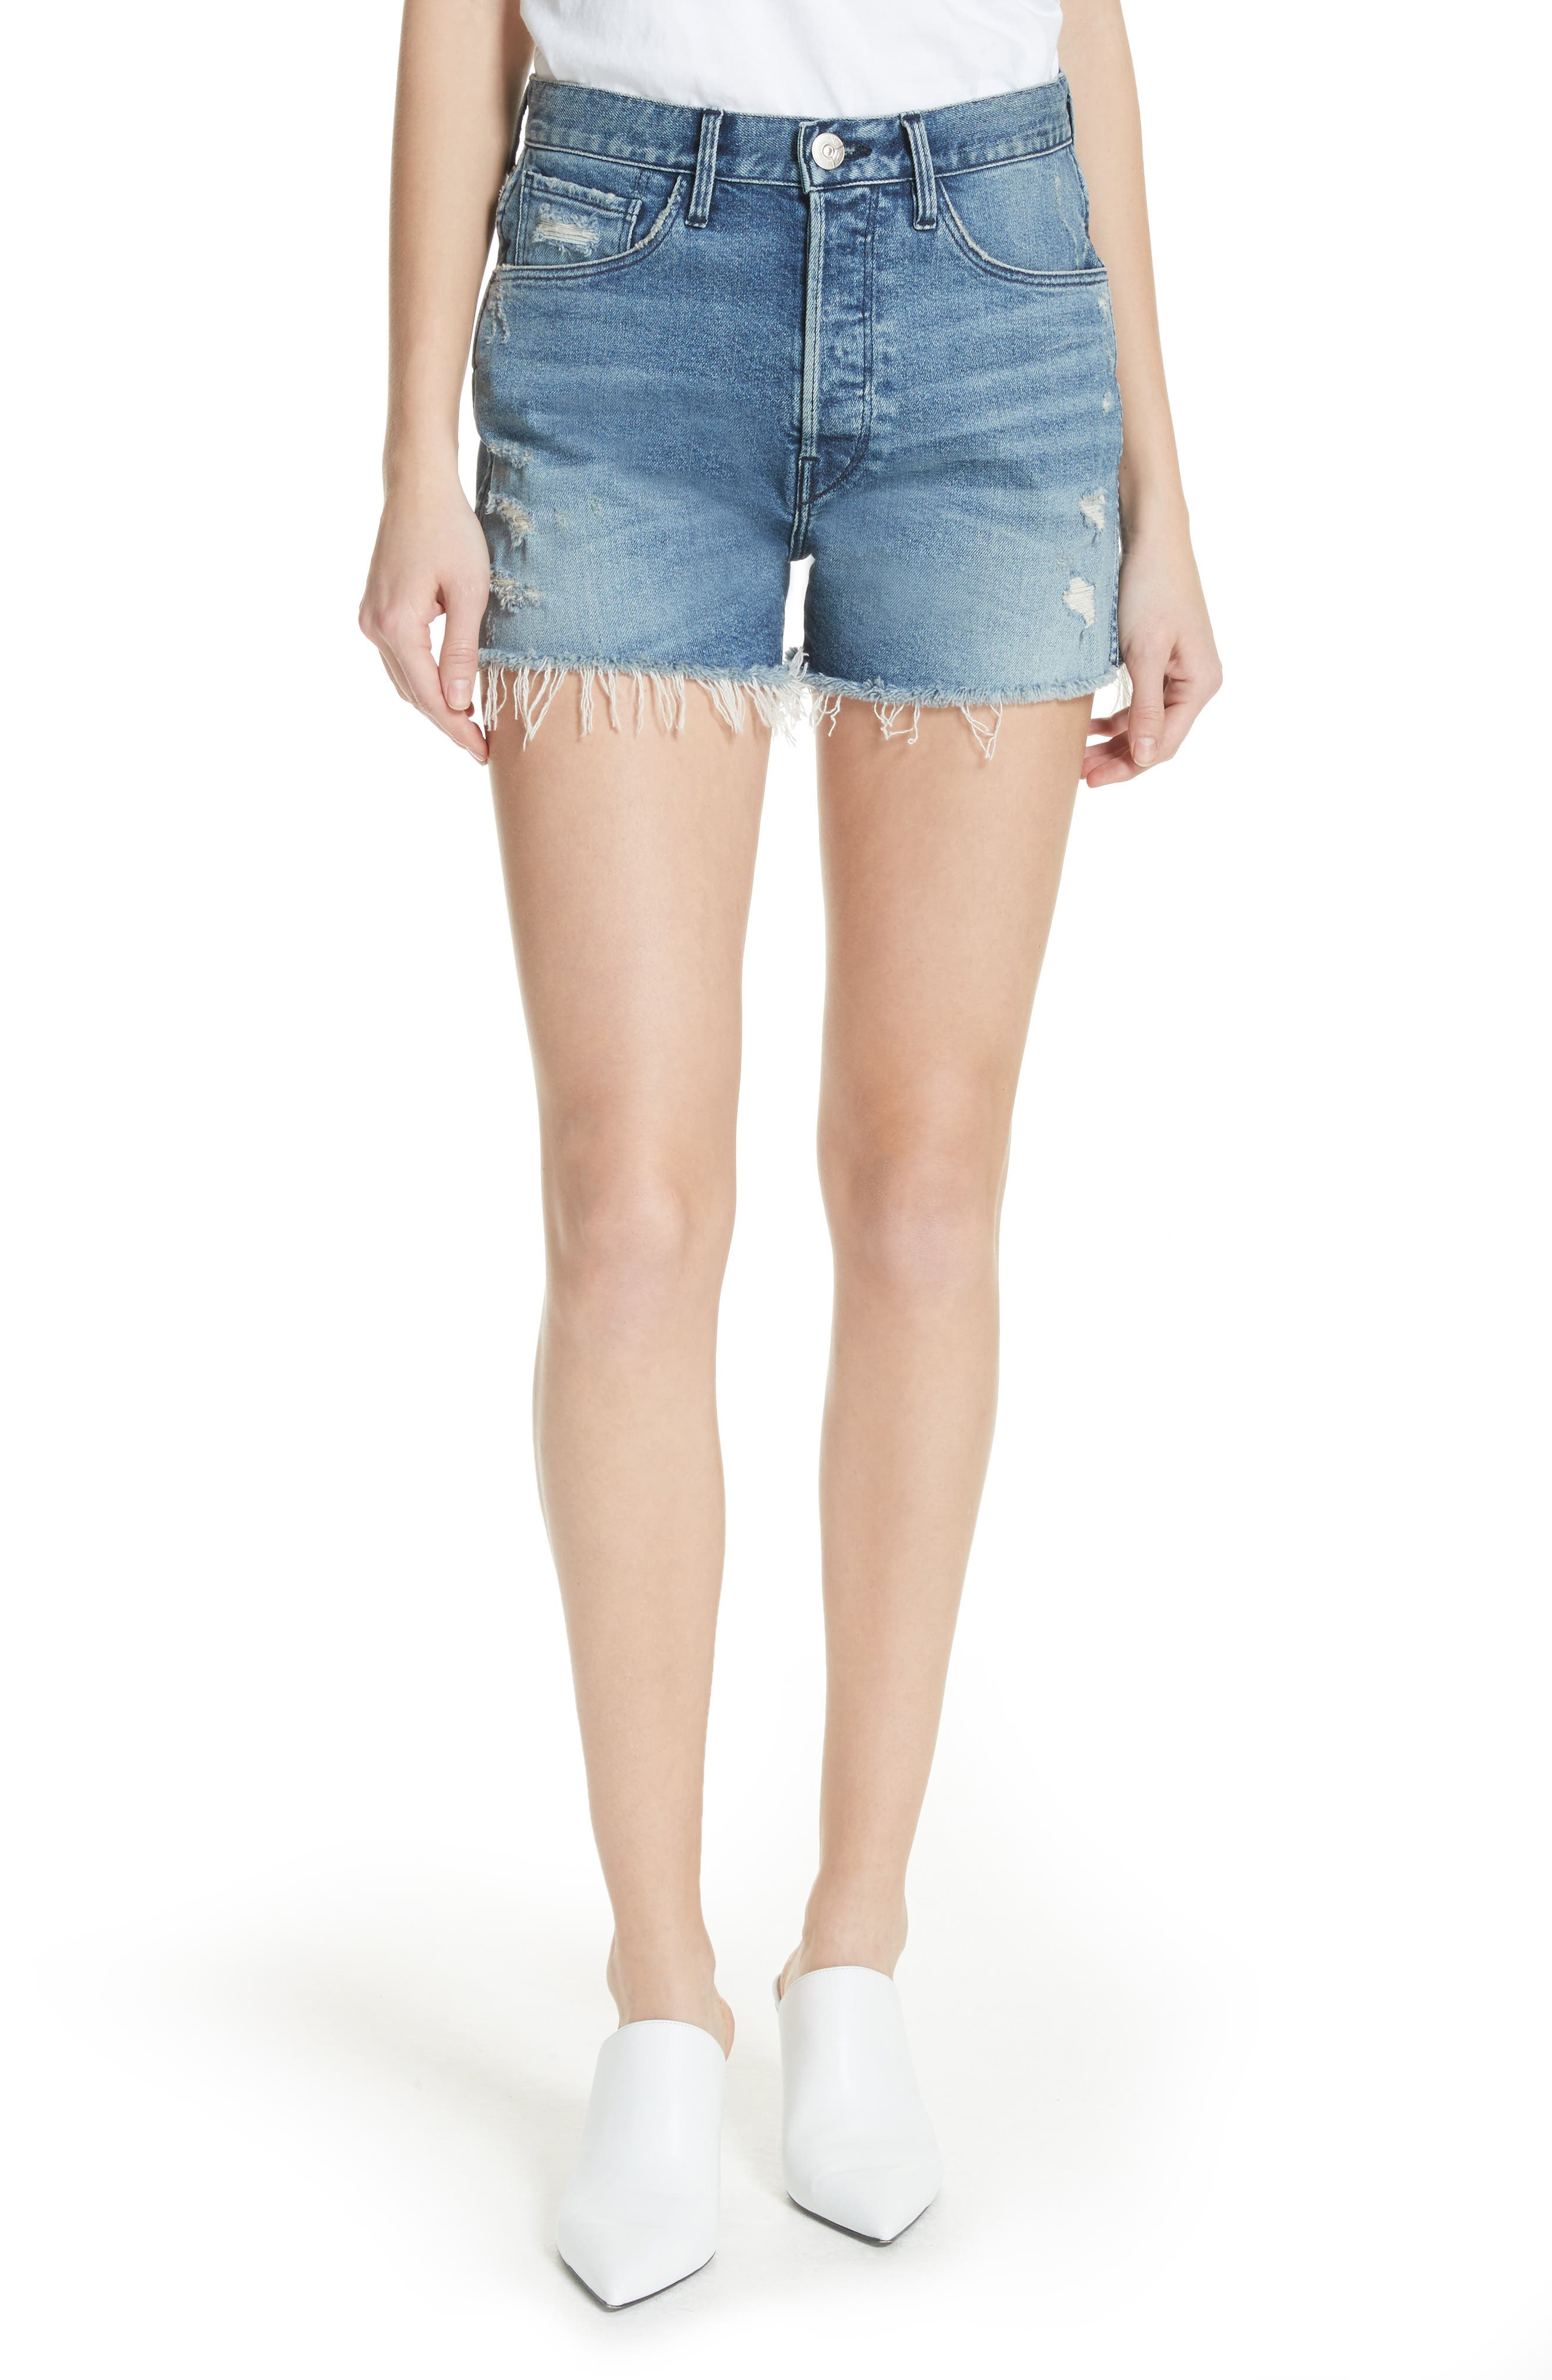 W4 Blake Raw Hem Denim Shorts,                             Main thumbnail 1, color,                             CHANCE